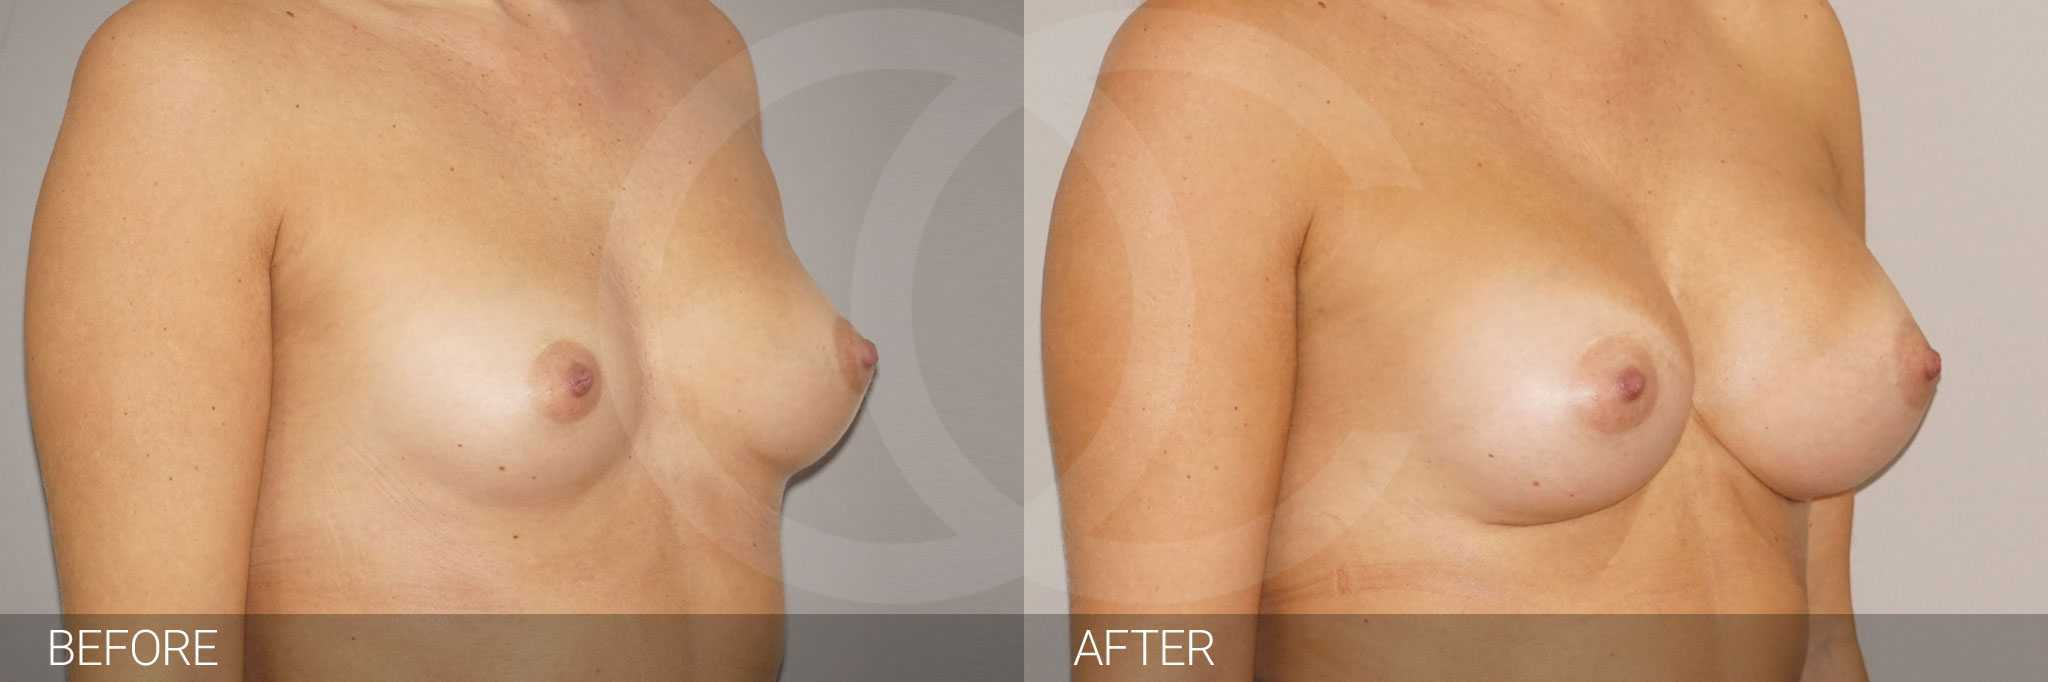 Breast augmentation high profile implants 280cc photos before and after